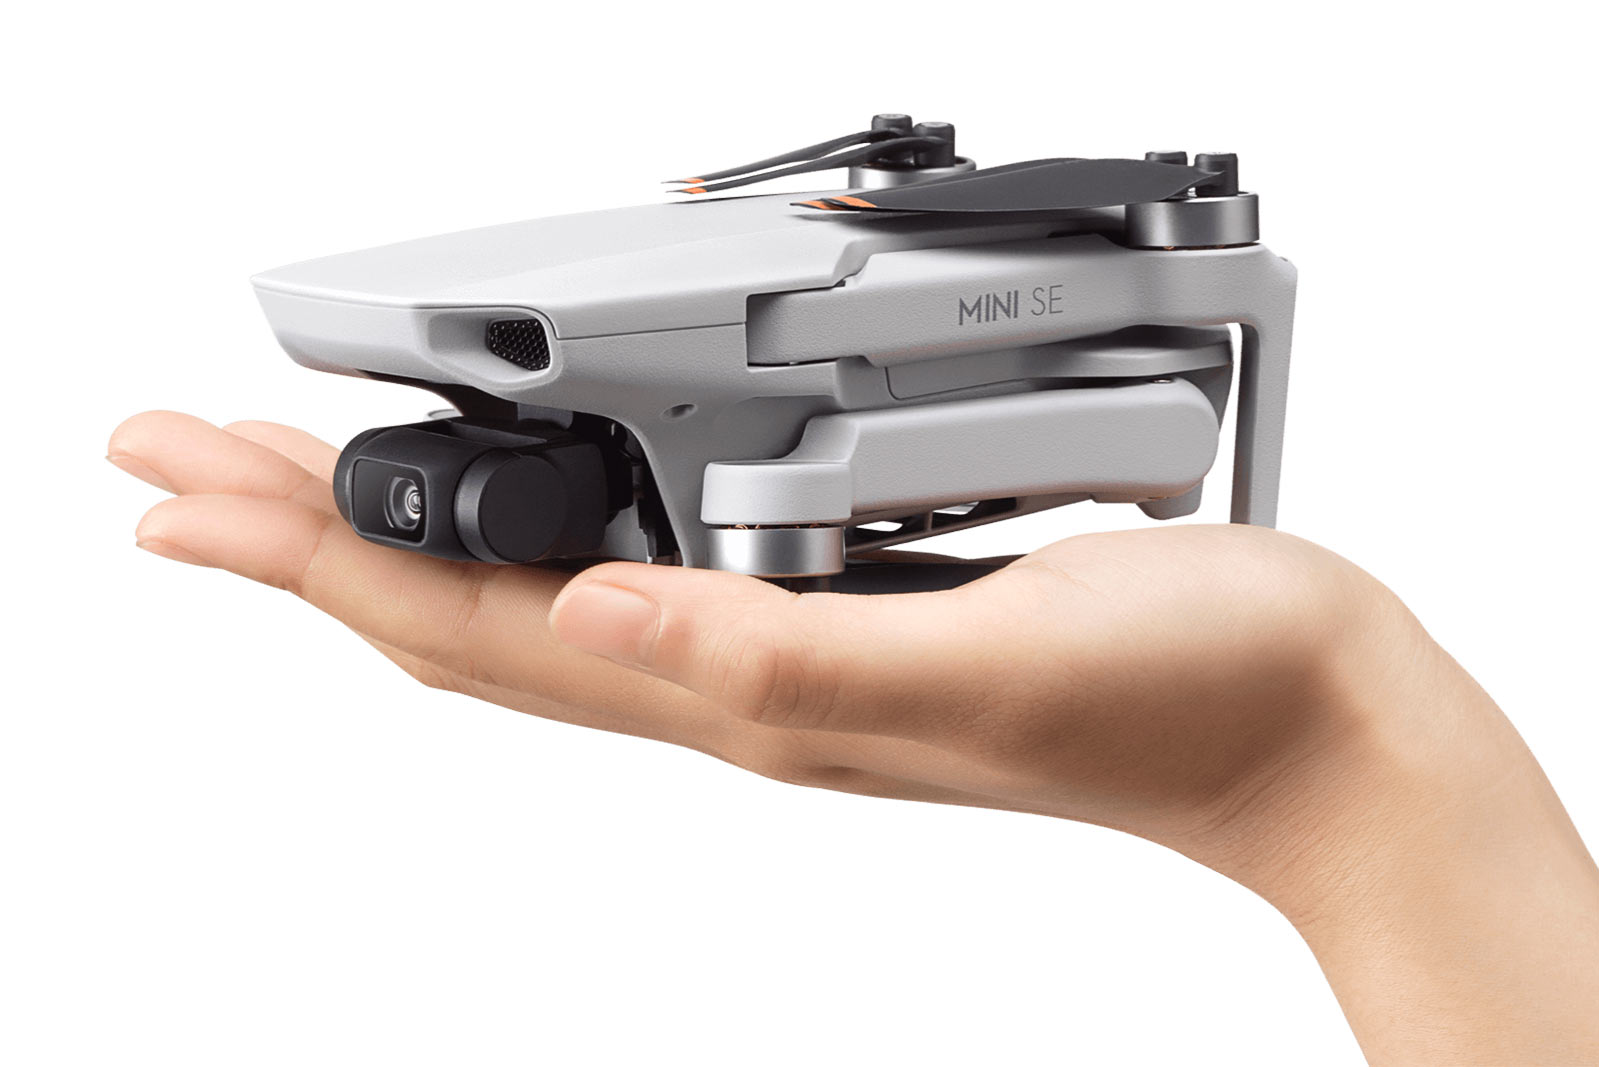 dji mini se drone in the palm of a hand